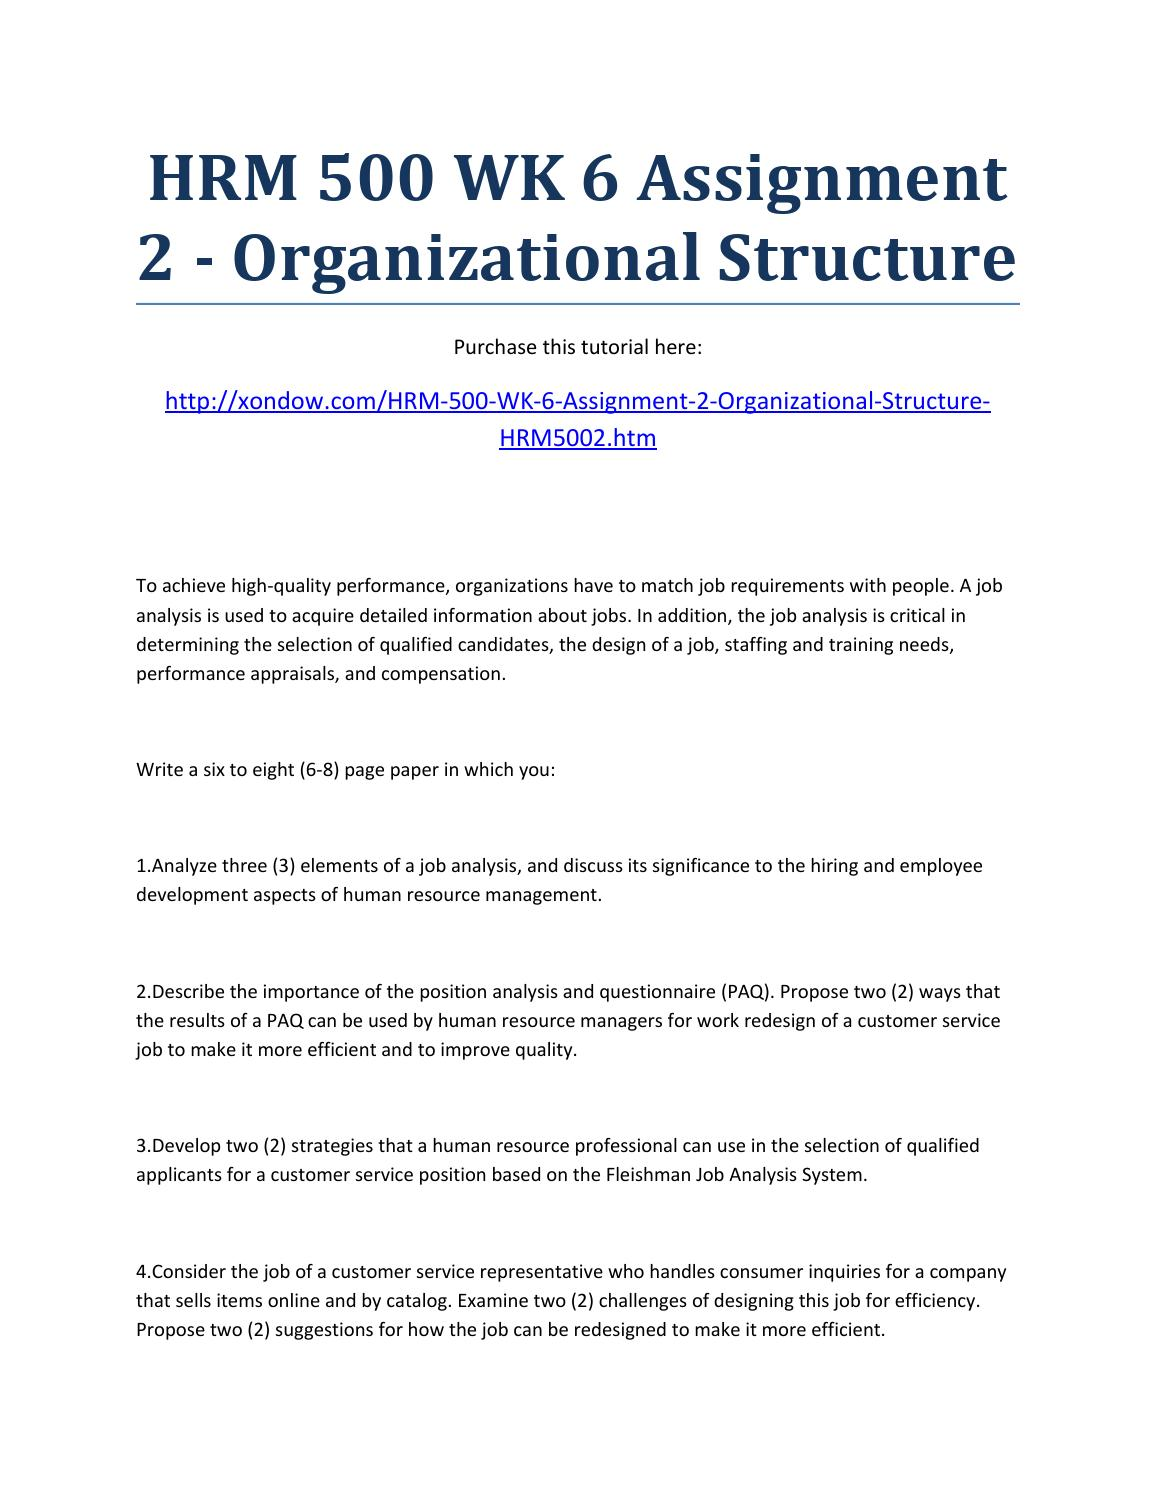 organizational structure analysis paper